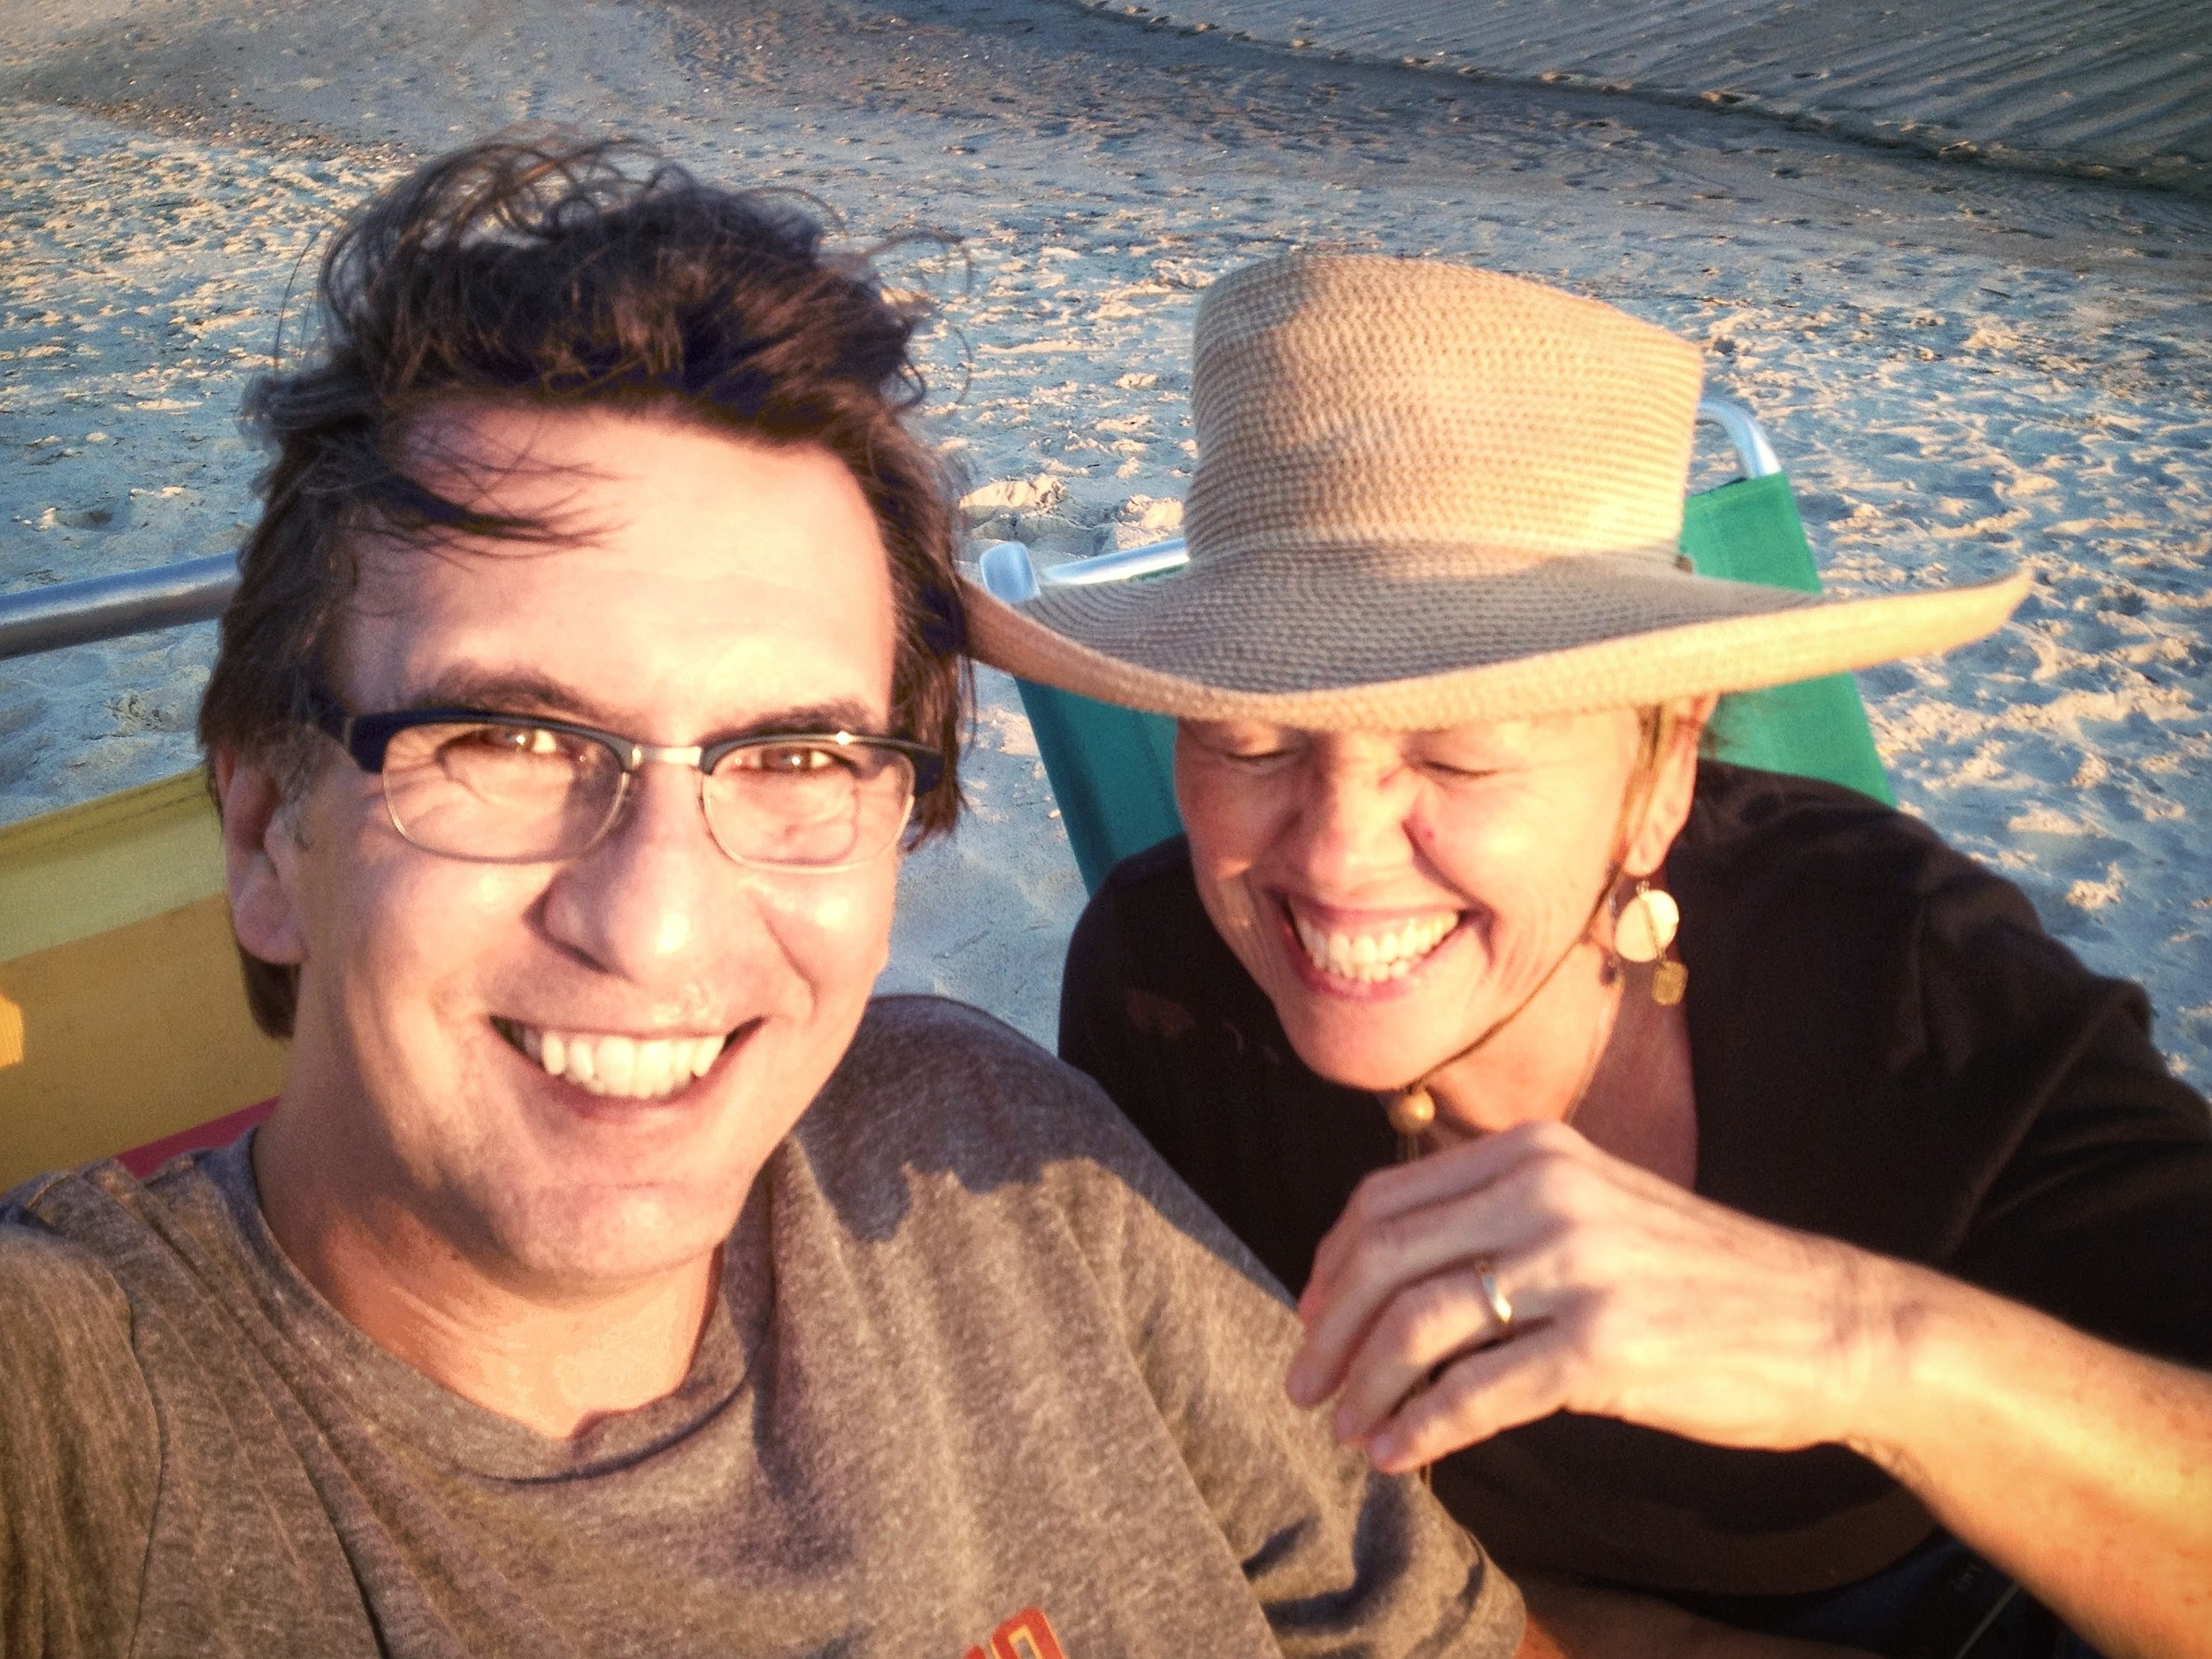 With Kitty, the love of my life, in 2013 on Oak Island, NC.